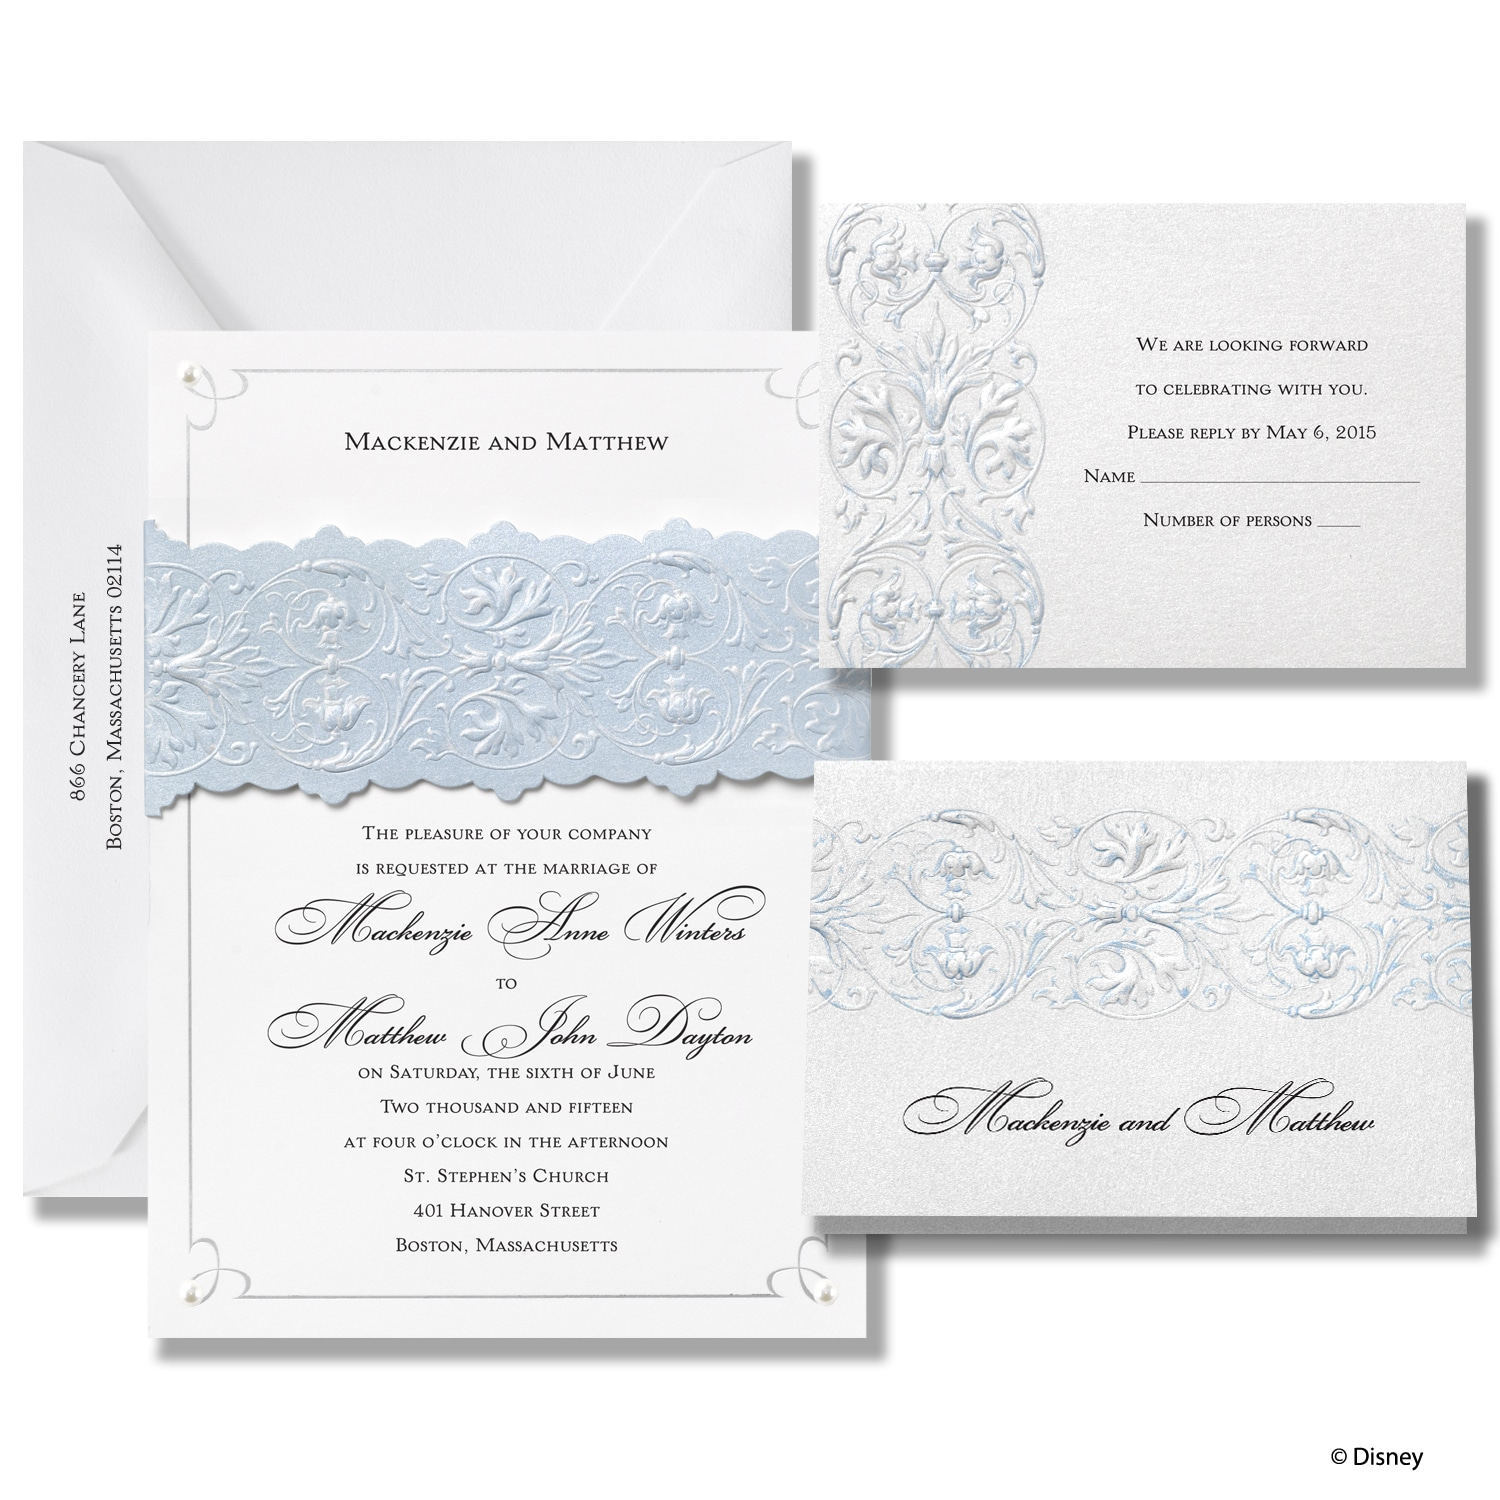 MKZN Once Upon a Time Wedding Invitation Cinderella michaels wedding invites Once Upon a Time Wedding Invitation Cinderella